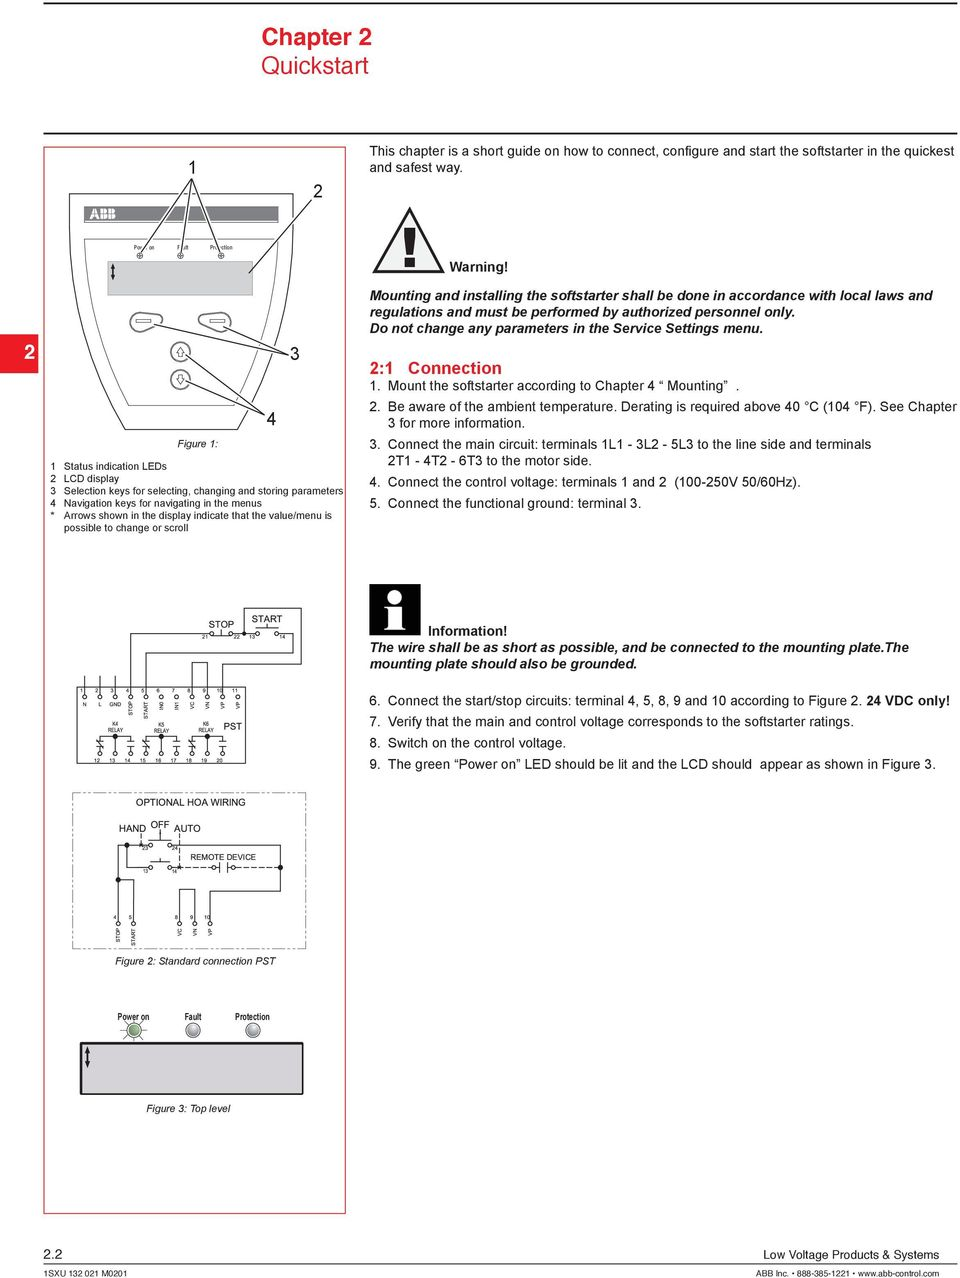 Standard Stop Start Motor Diagram Electrical Wiring Diagrams Stations For 2 Installation And Maintenance Manual Softstarters Pst Pstb Pdf 3 Button Station